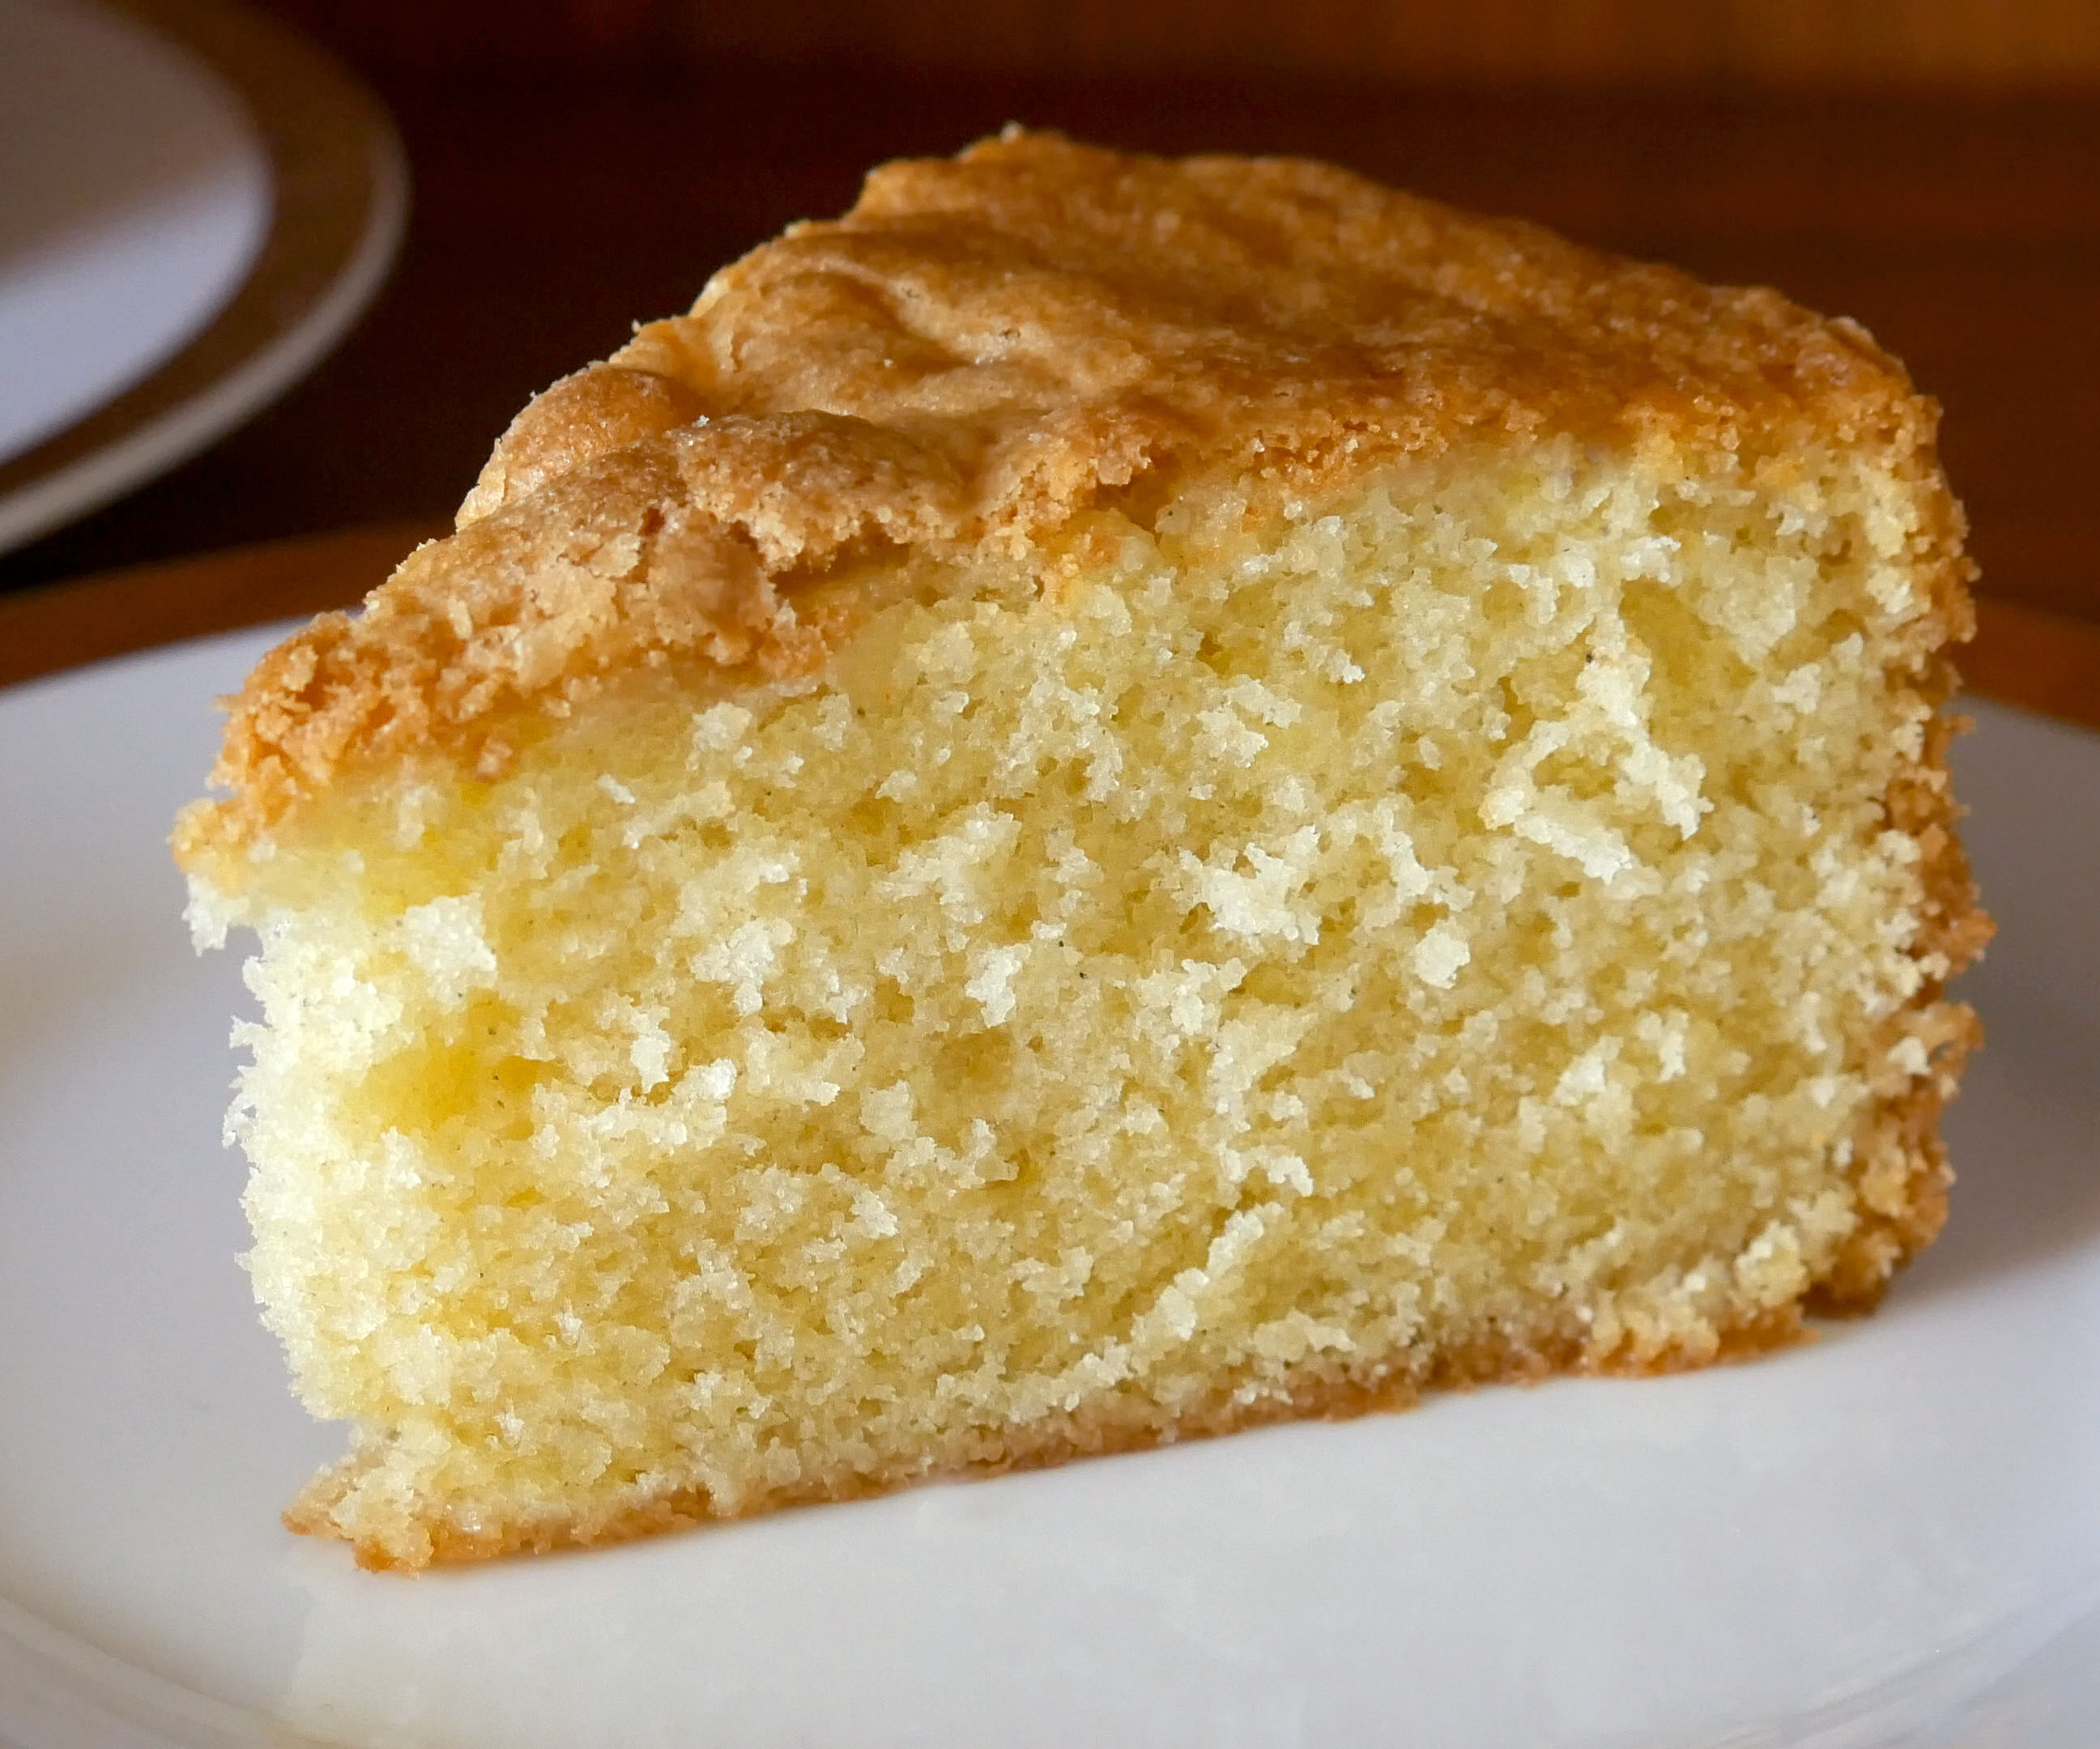 SIMPLE VANILLA SPONGE (POUND) CAKE